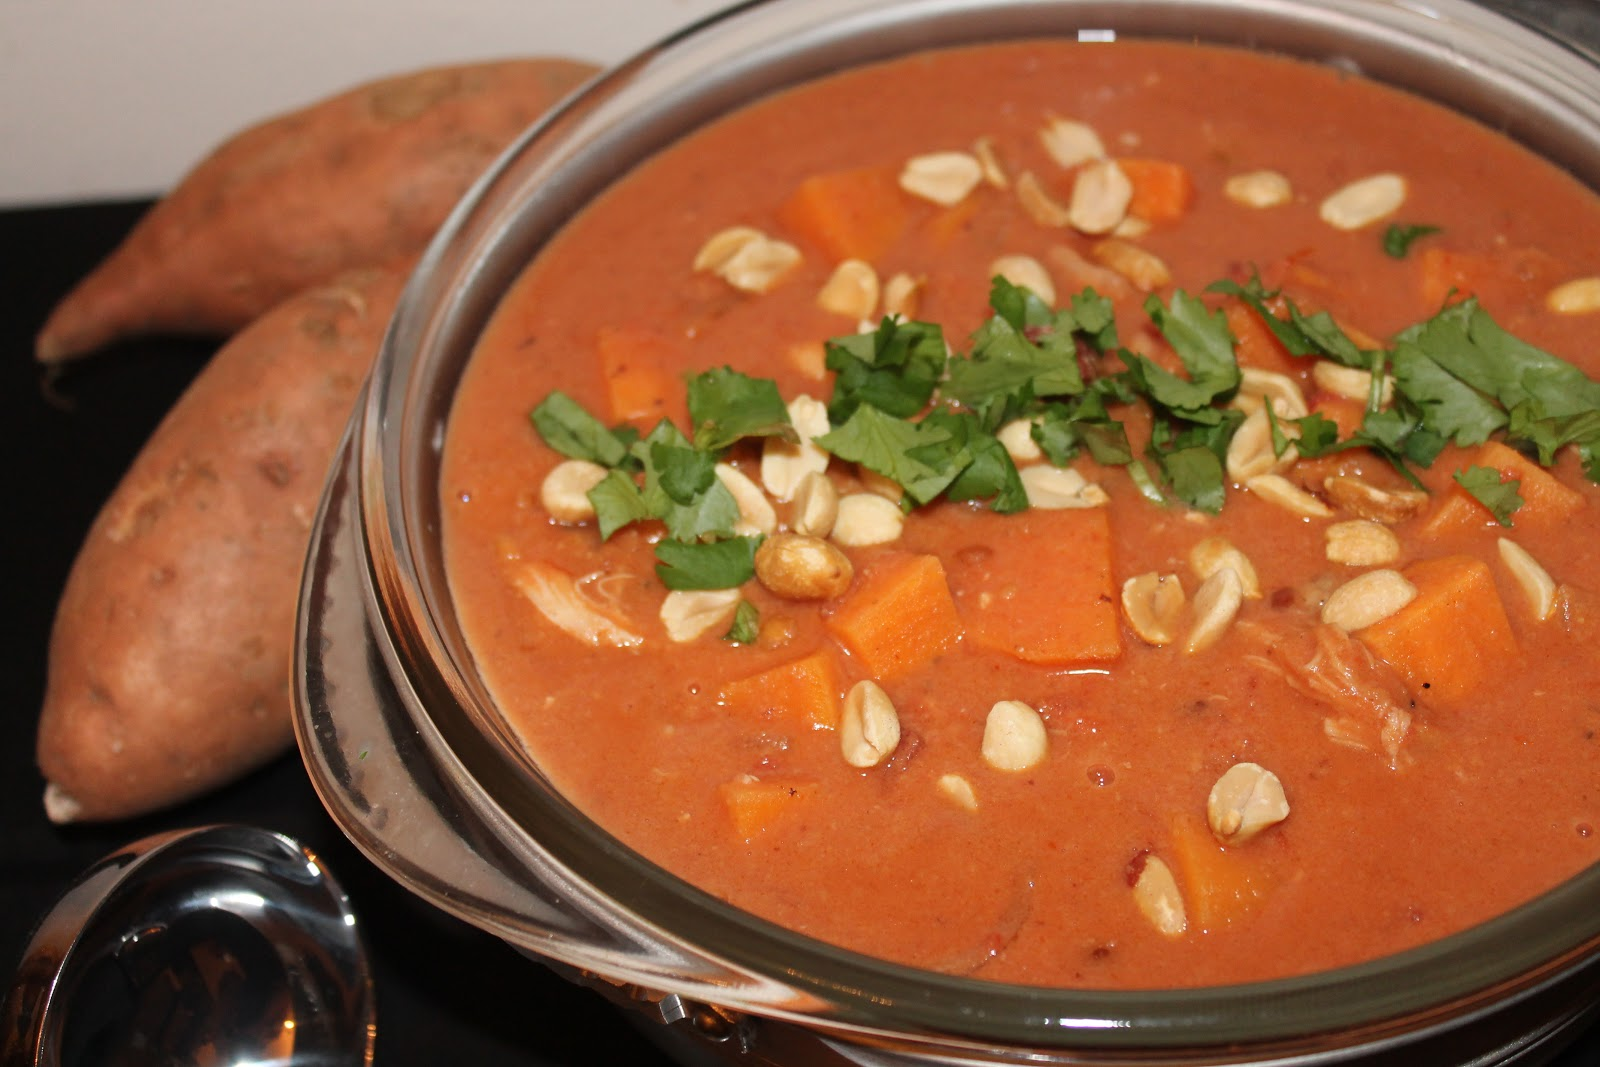 Savory Moments: West African chicken and peanut stew